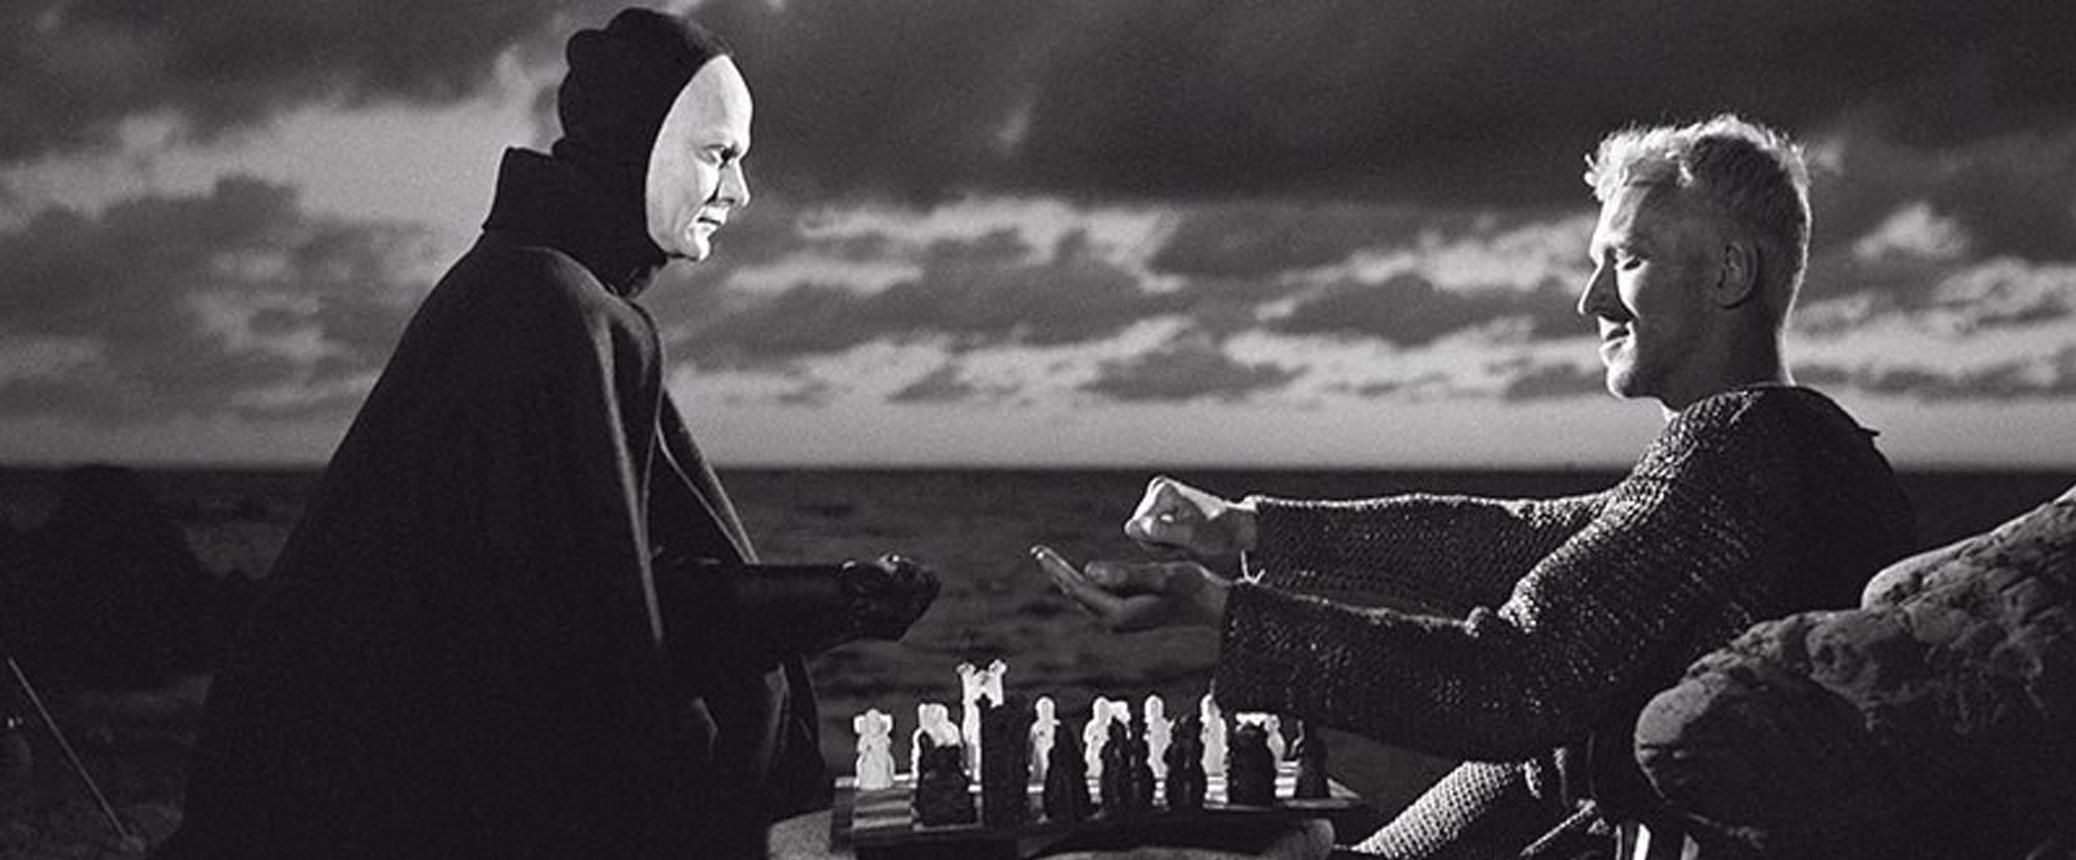 THE SEVENTH SEAL (CHESS GAME)